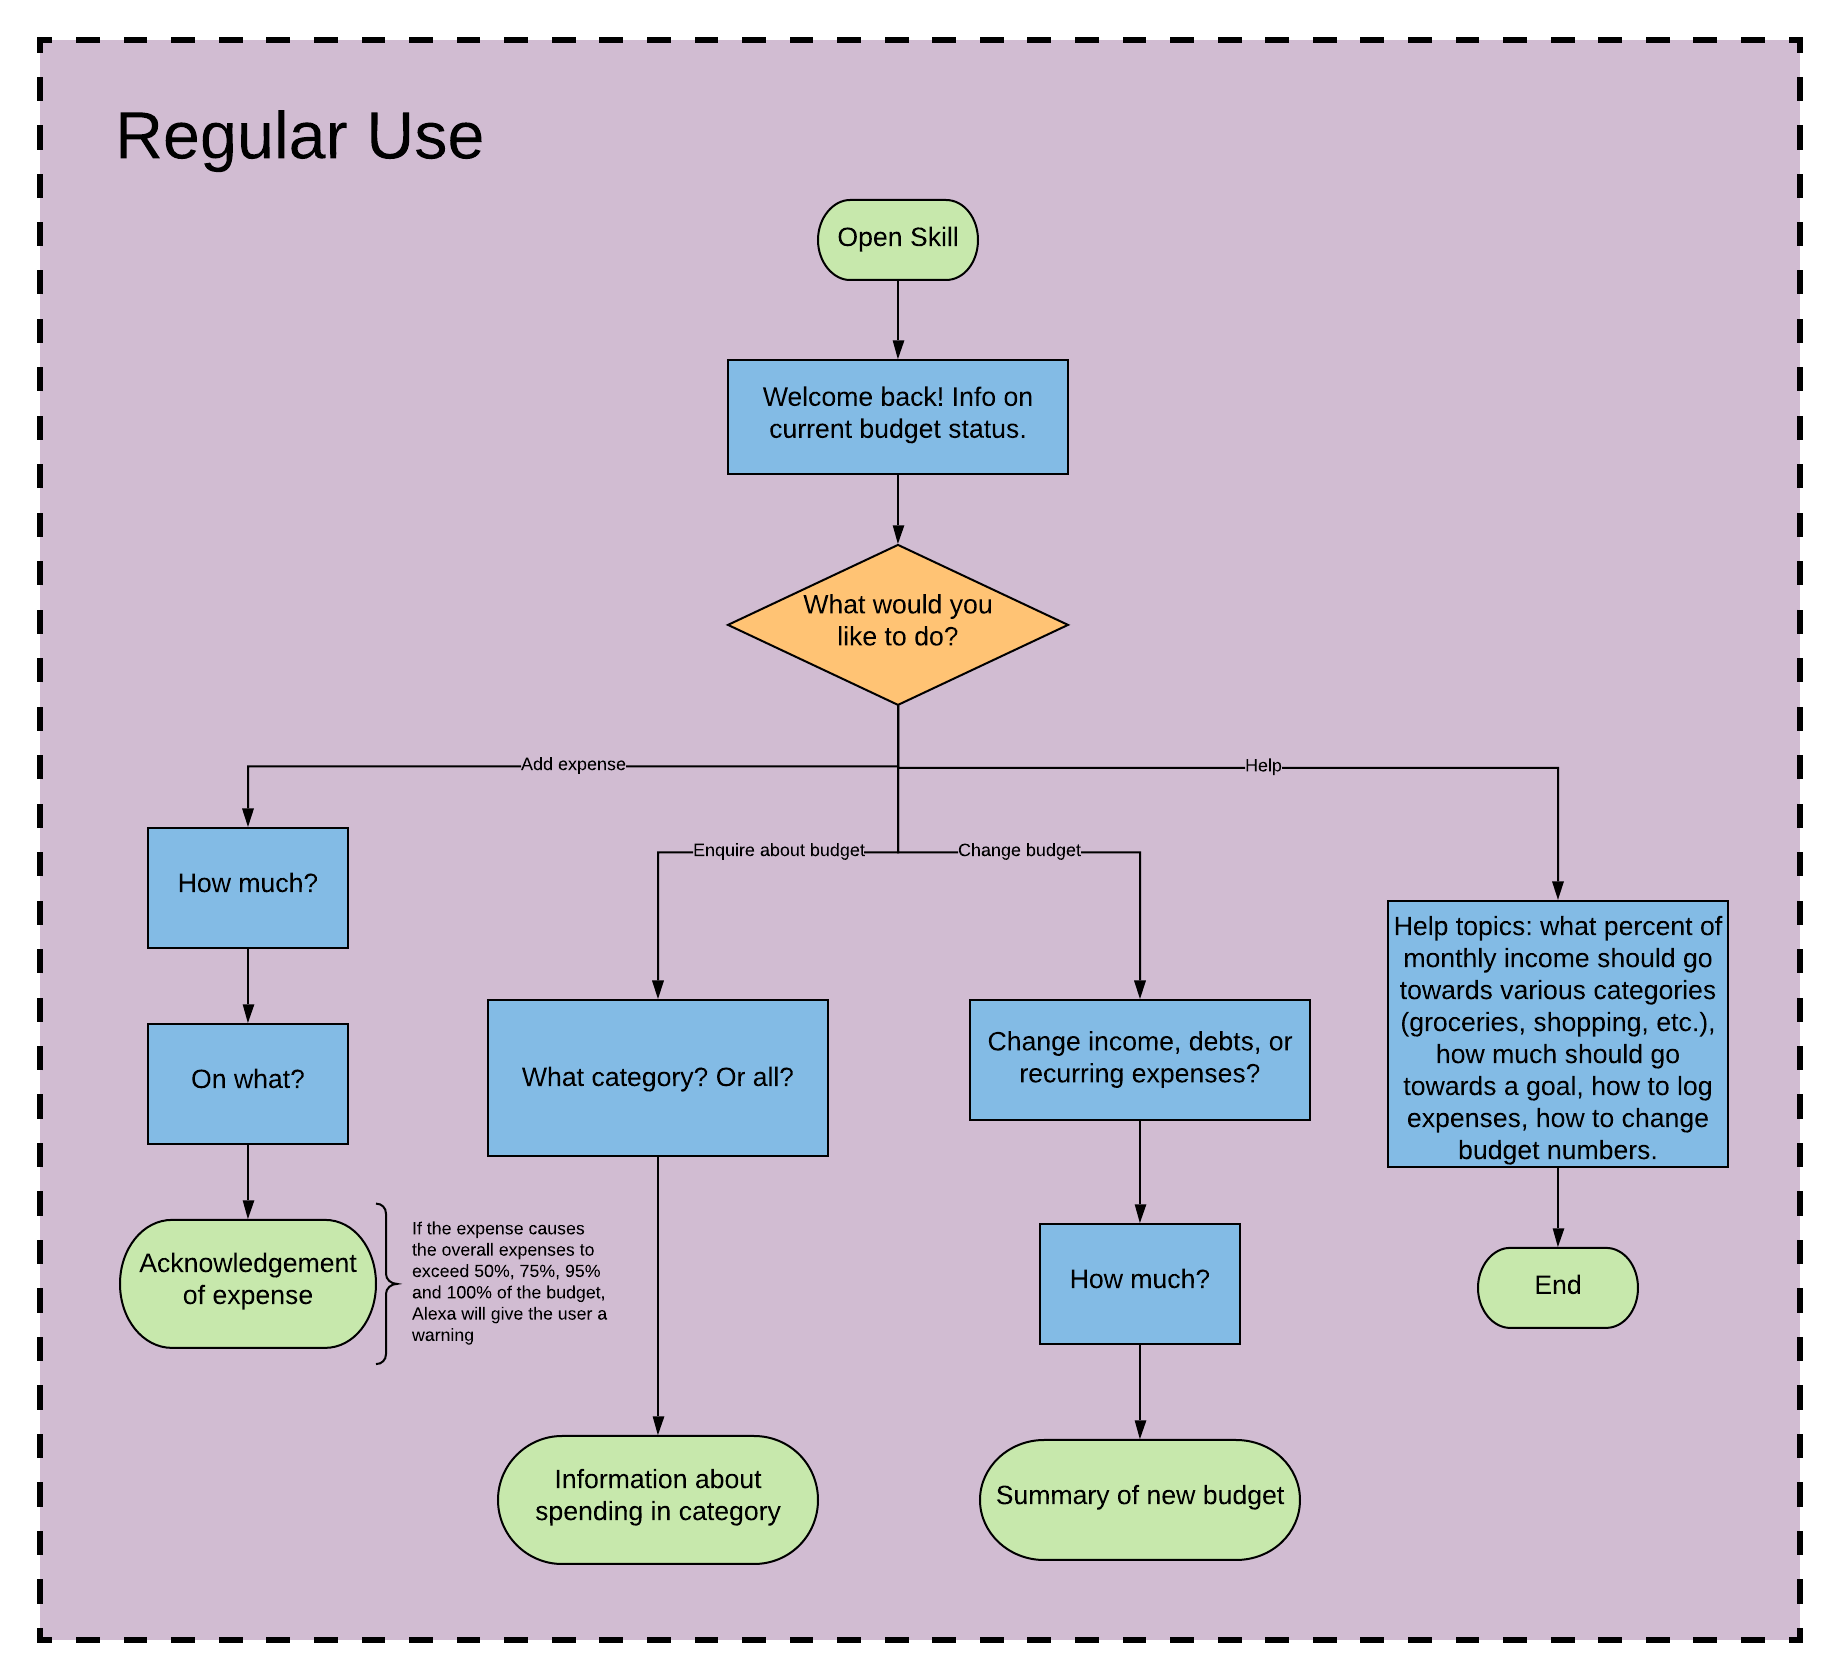 A flowchart of how a user of the skill would use it after initial set-up.